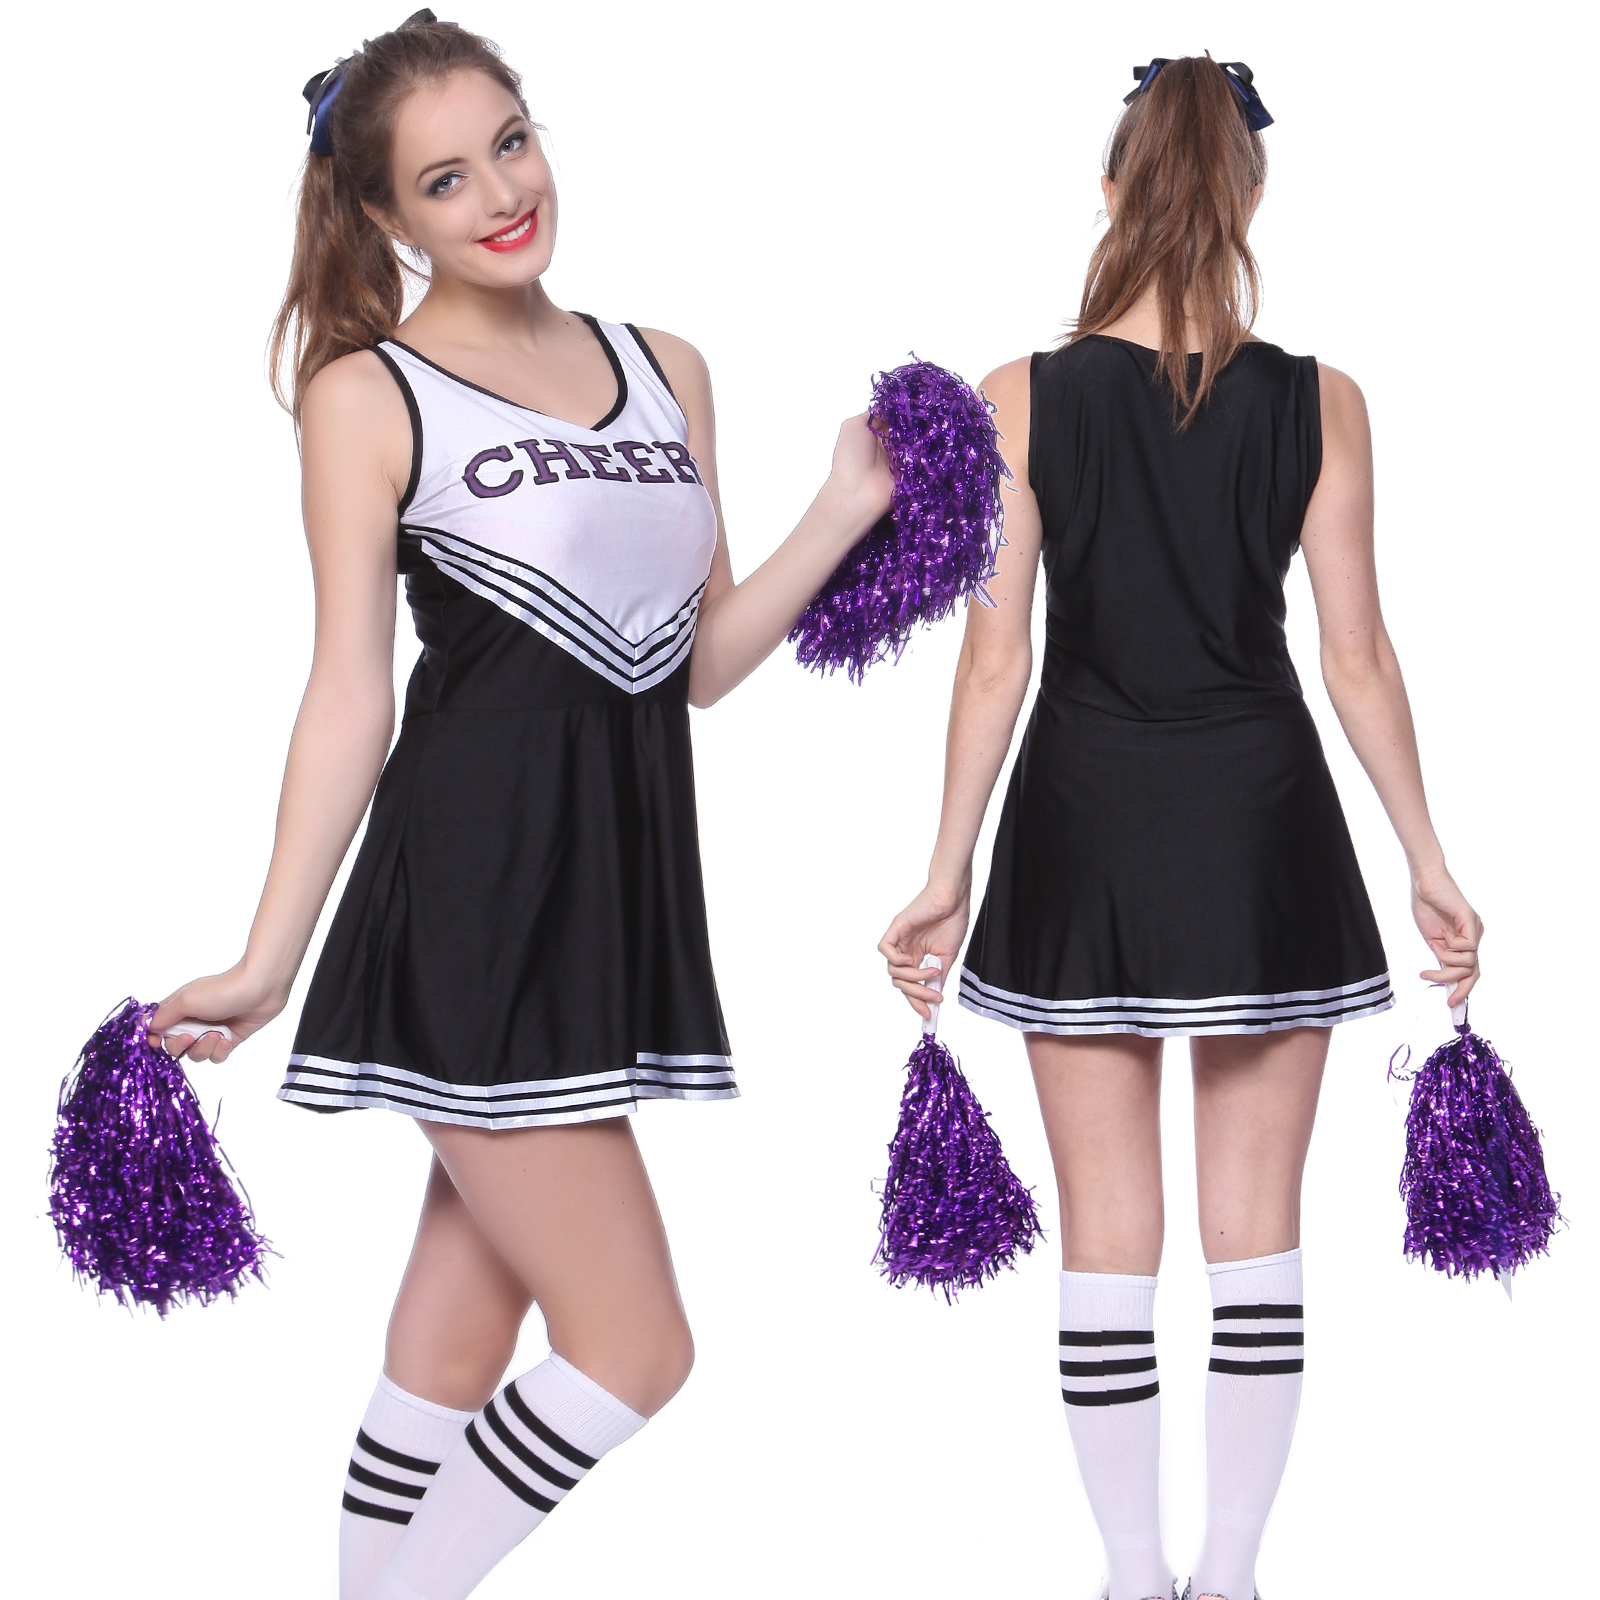 c7584e02 High School Musical Cheer Girl Cheerleader Uniform Costume Outfit w ...